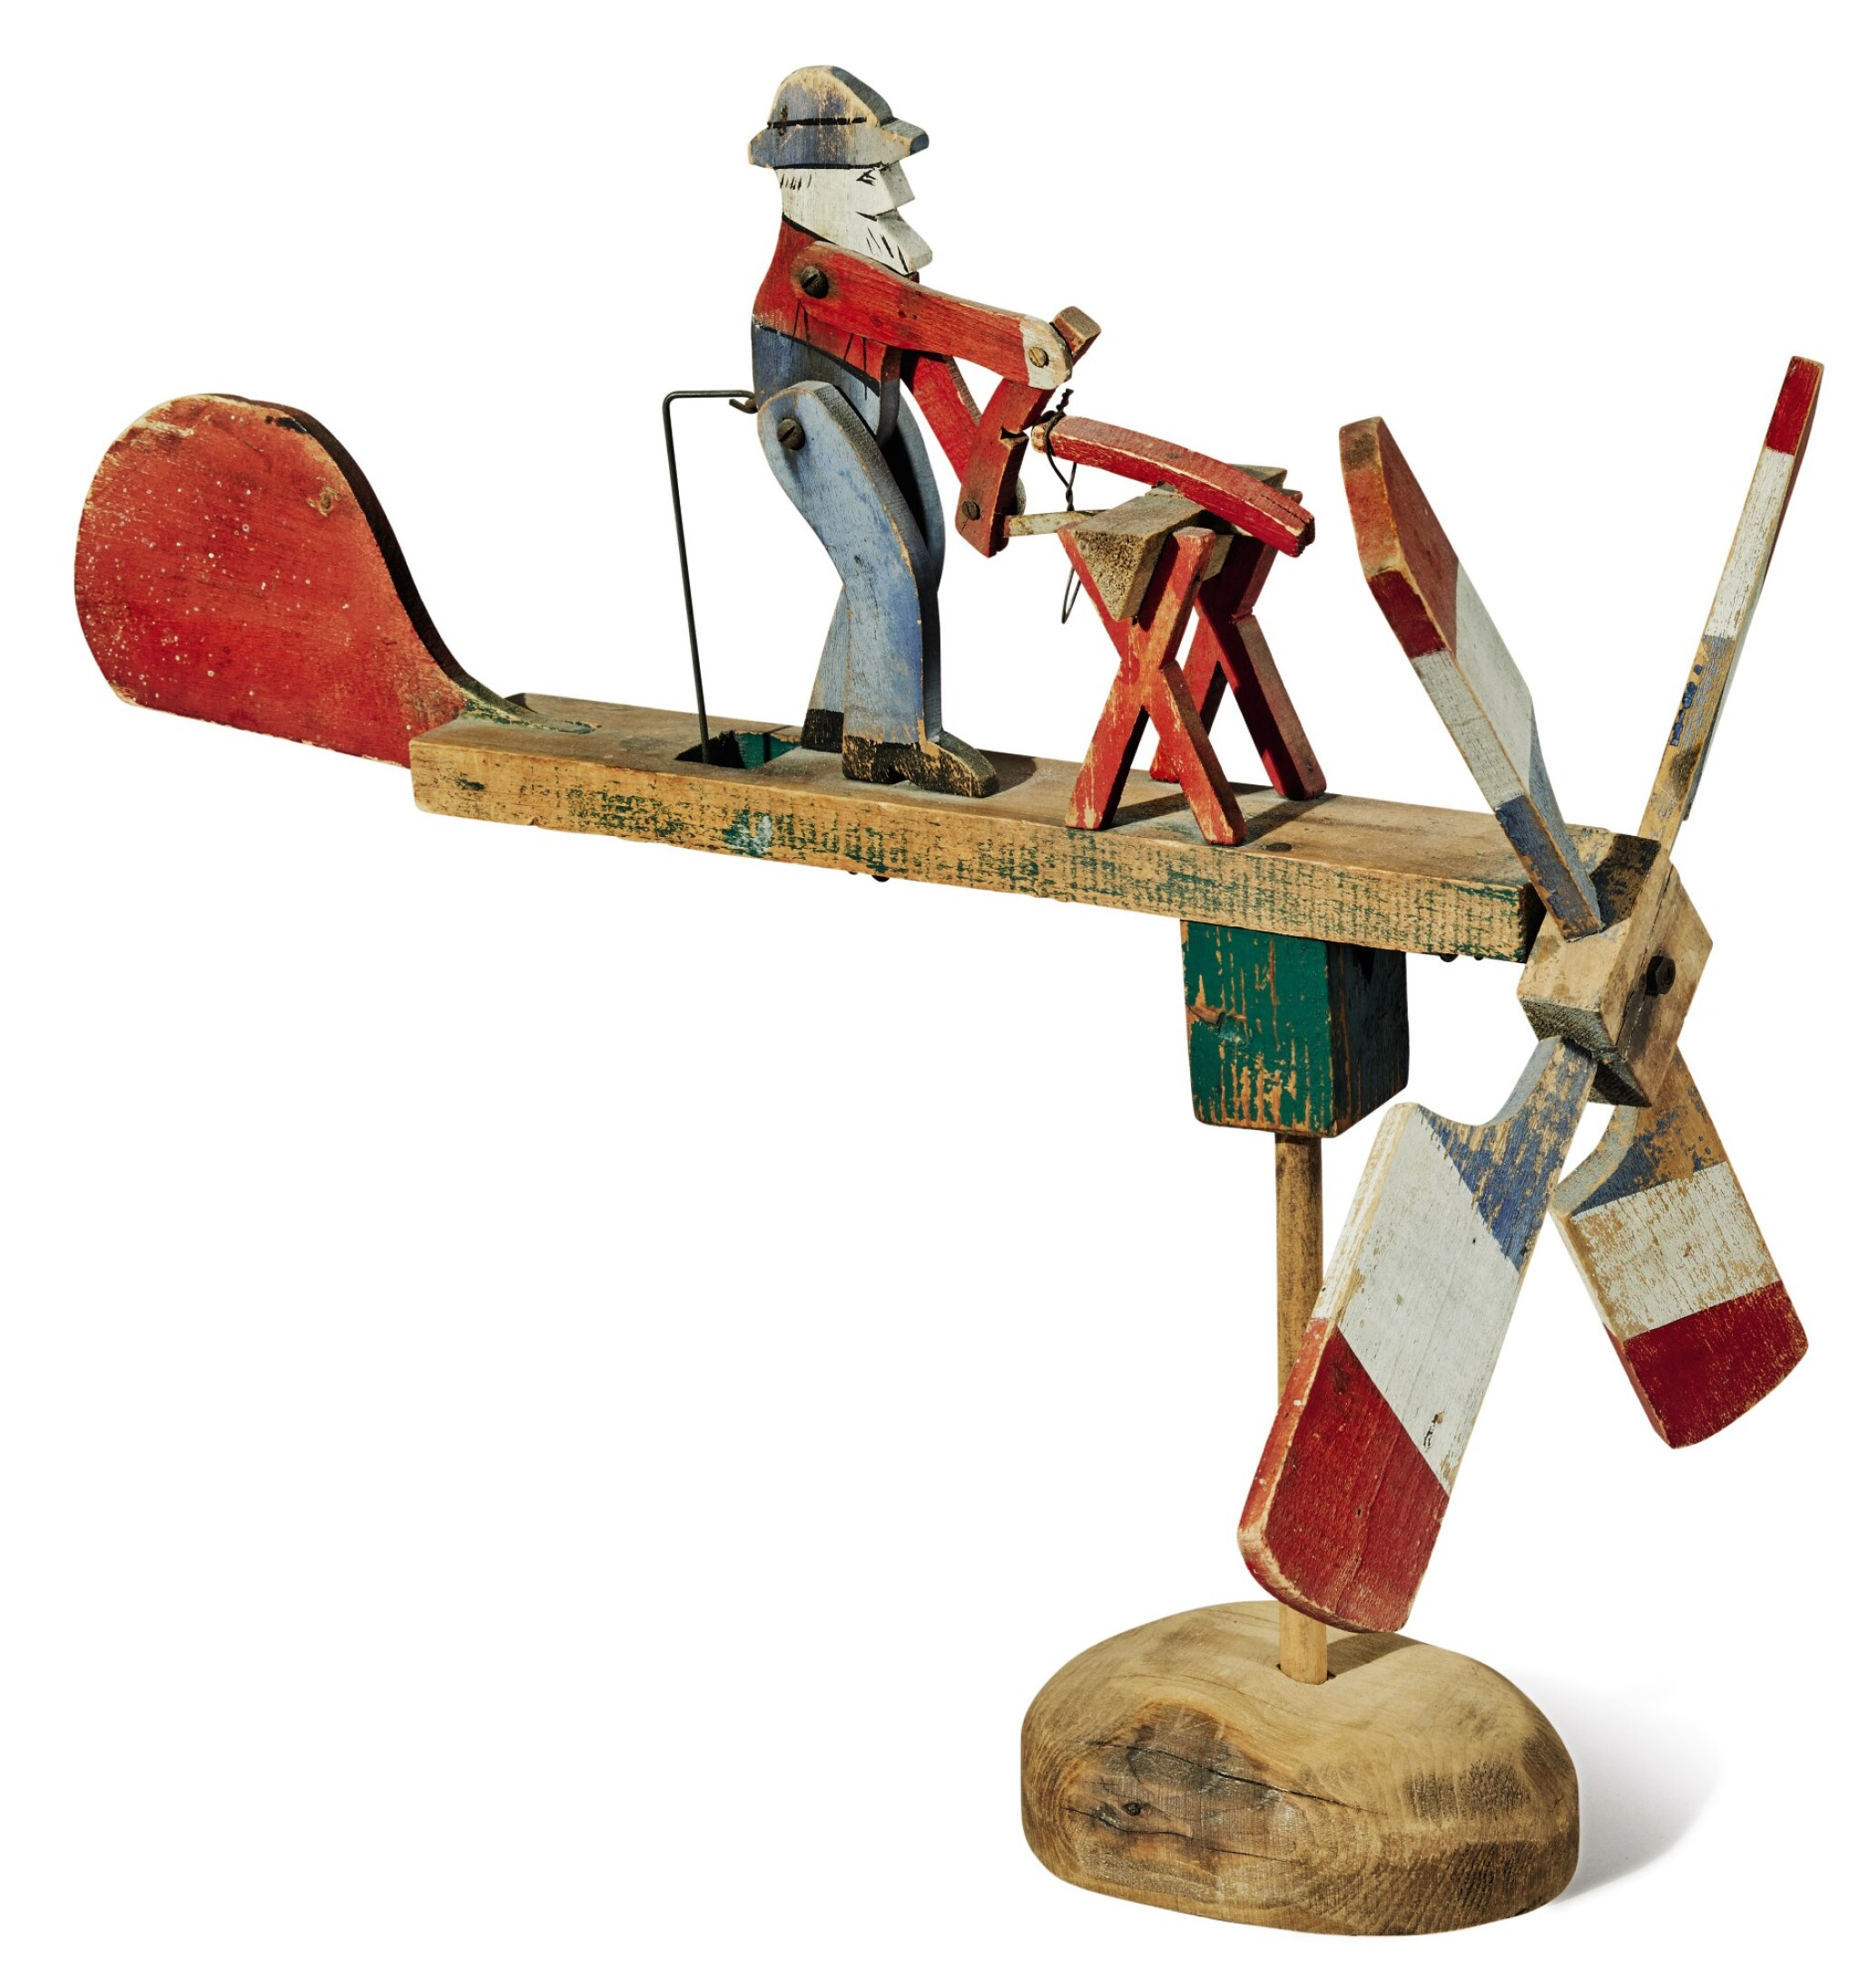 View full screen - View 1 of Lot 1463. POLYCHROME-PAINTED PINE WOODWORKER WHIRLIGIG, EARLY 20TH CENTURY.